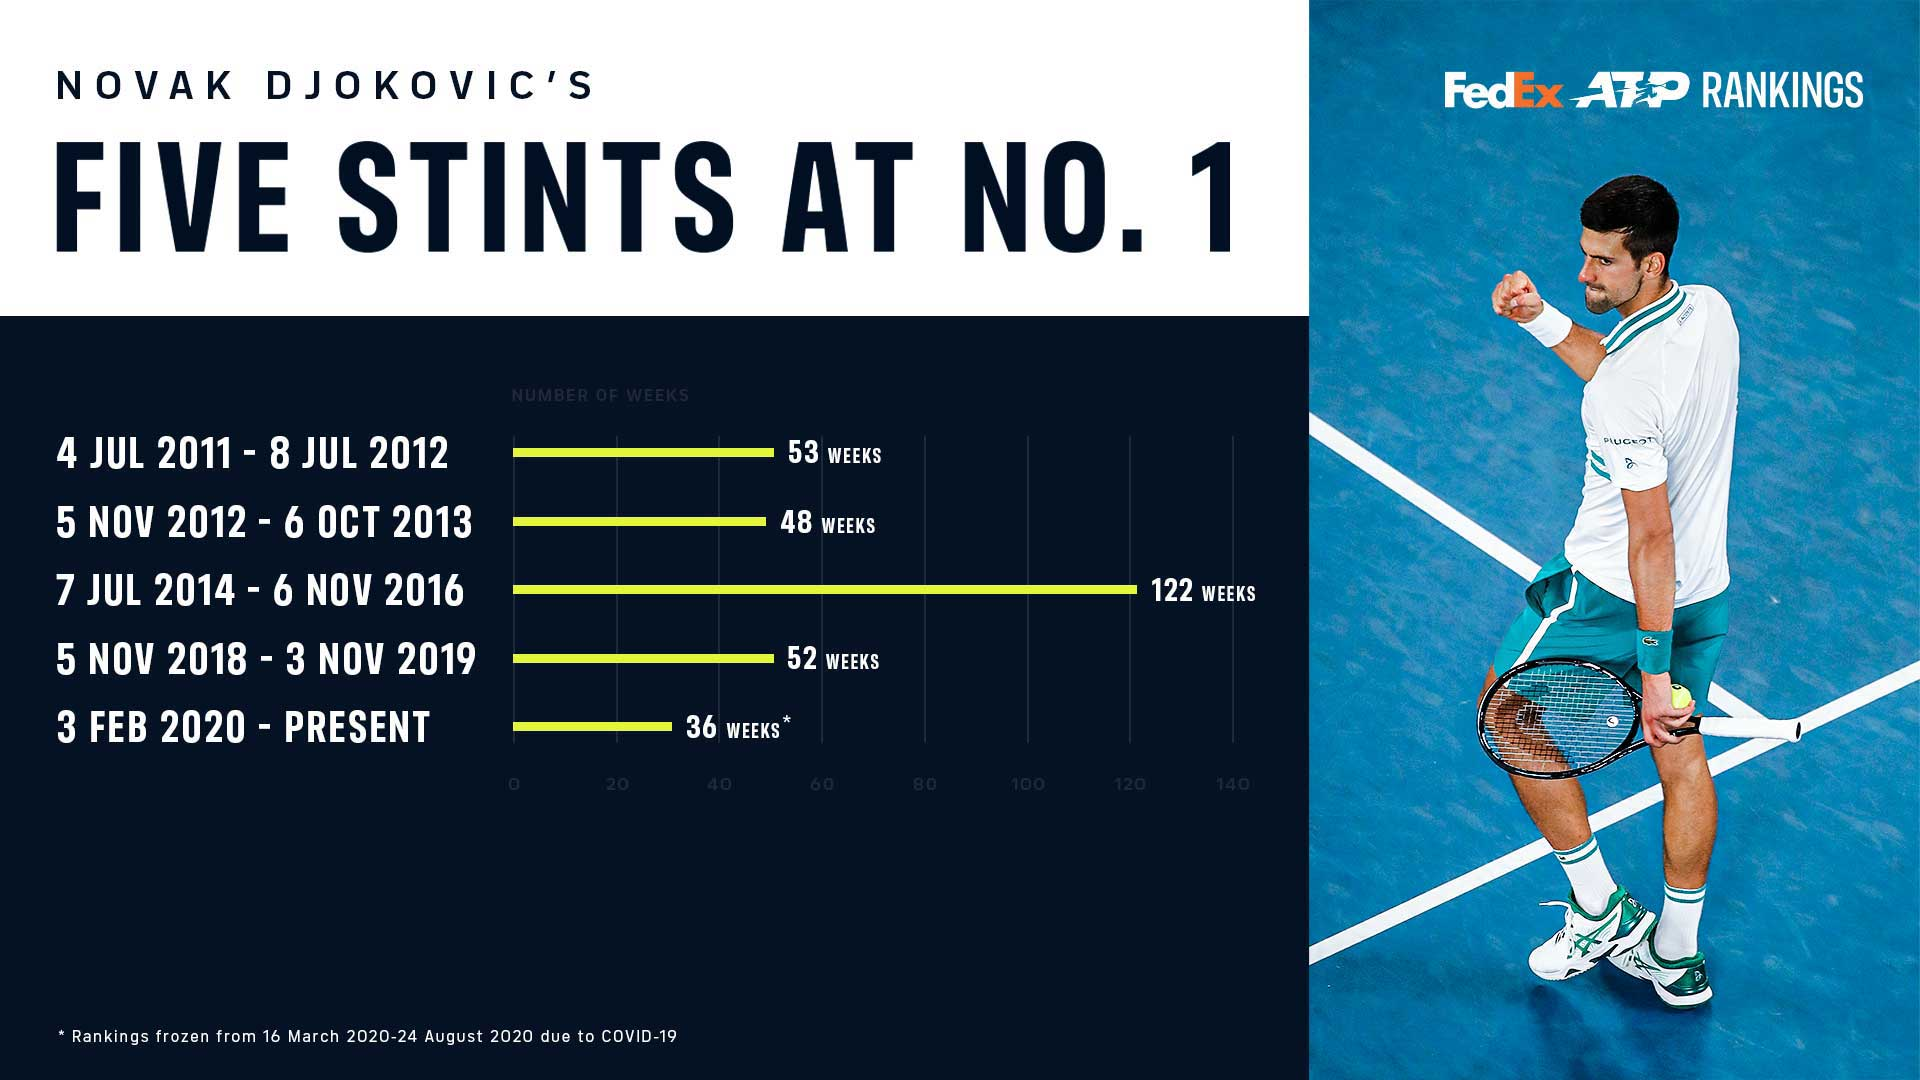 Djokovic's five stints at No. 1 in the FedEx ATP Rankings